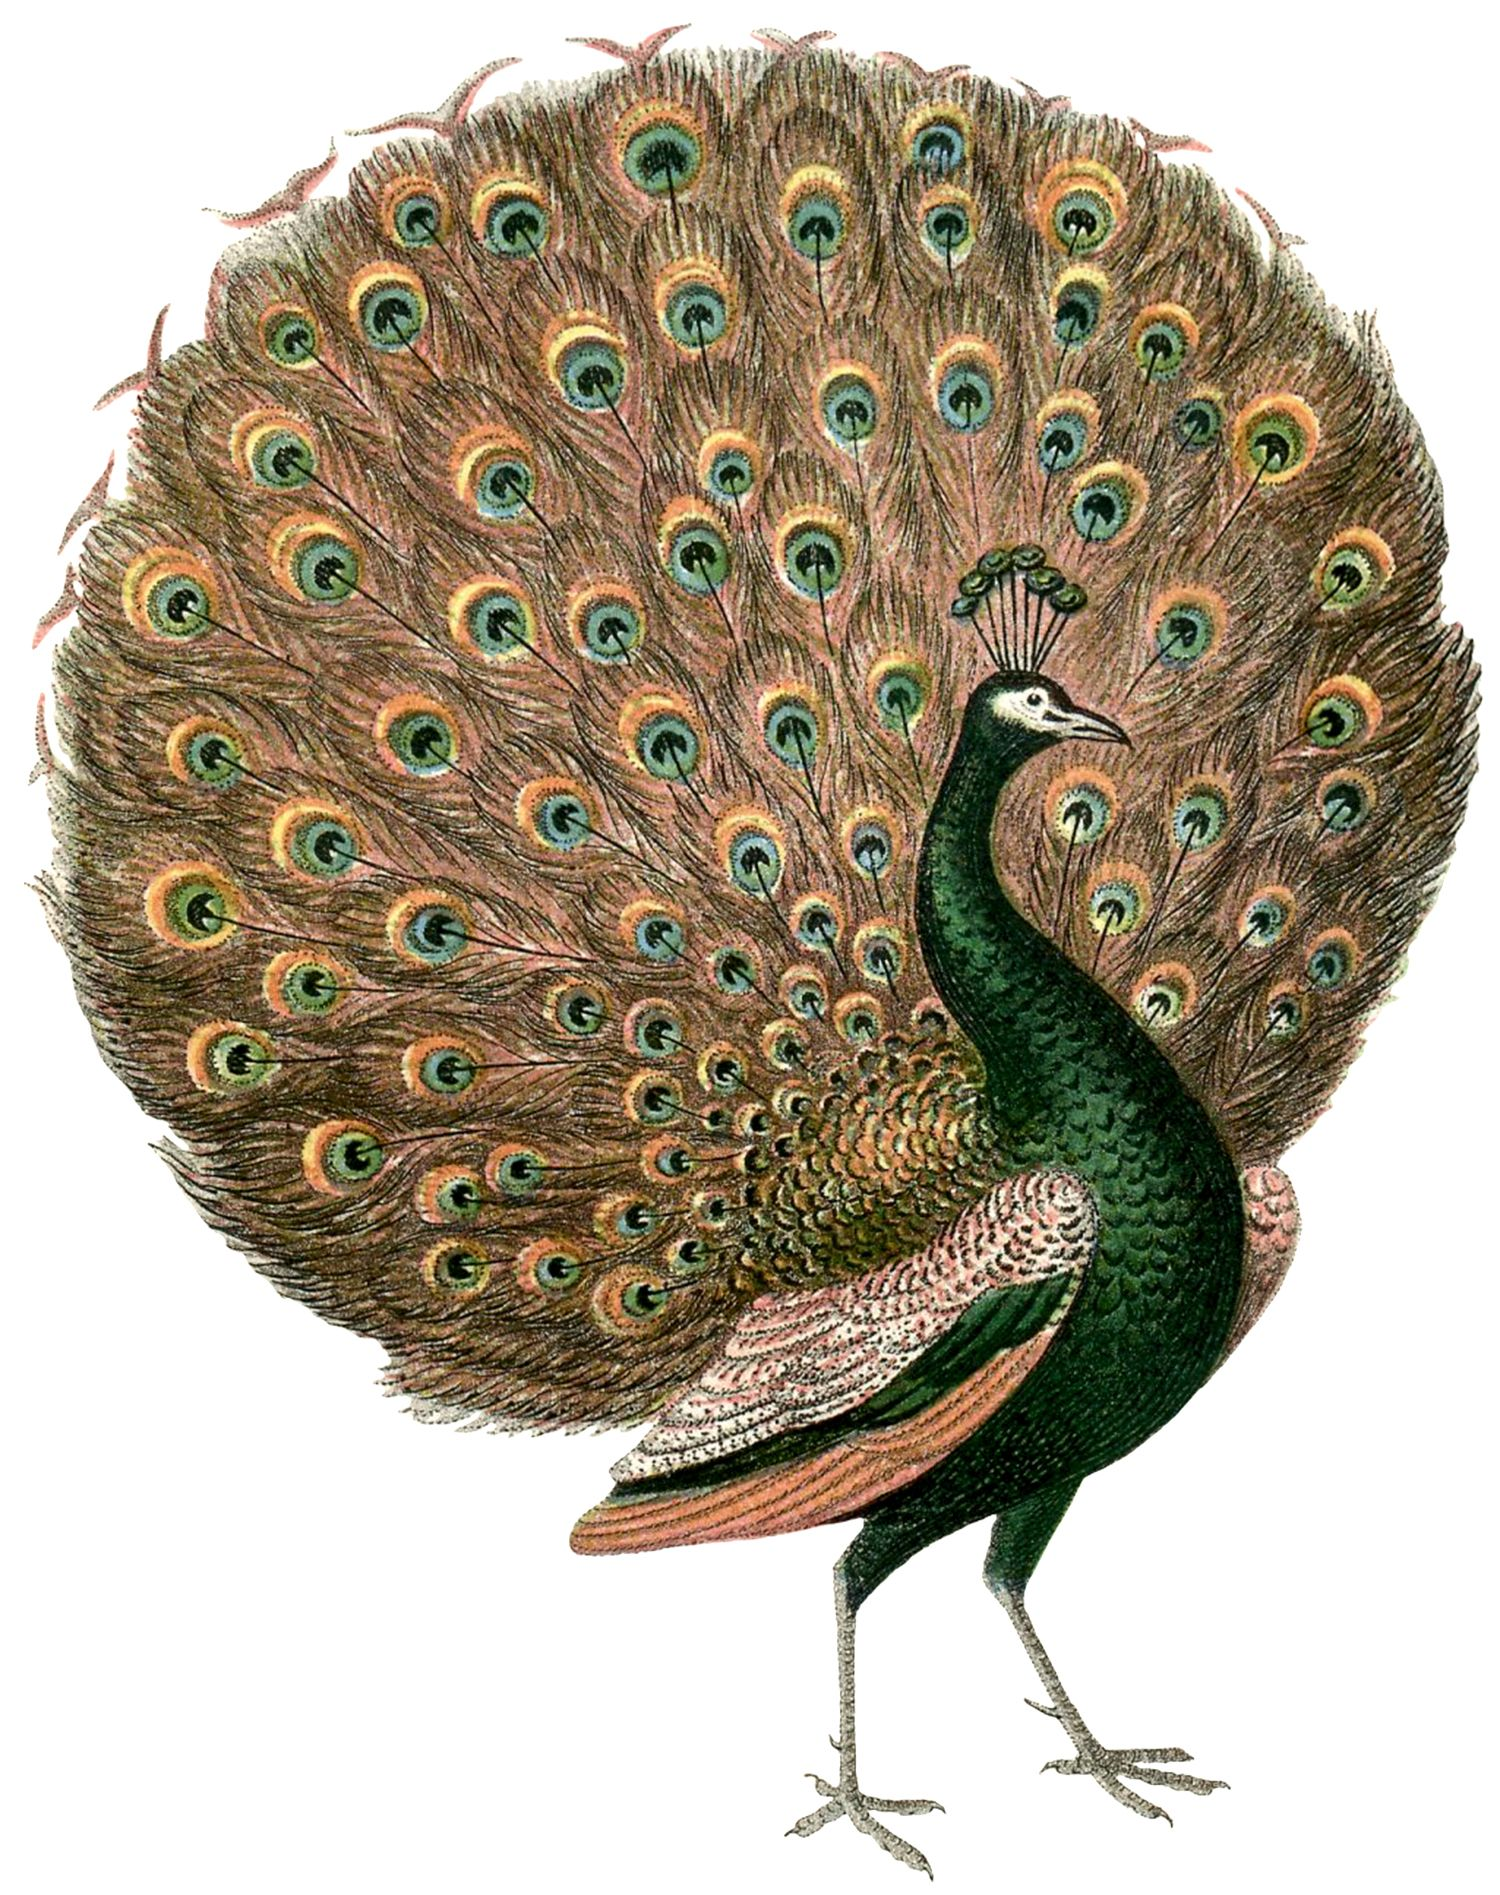 Gorgeous Vintage Peacock Images | peacocks | Peacock images